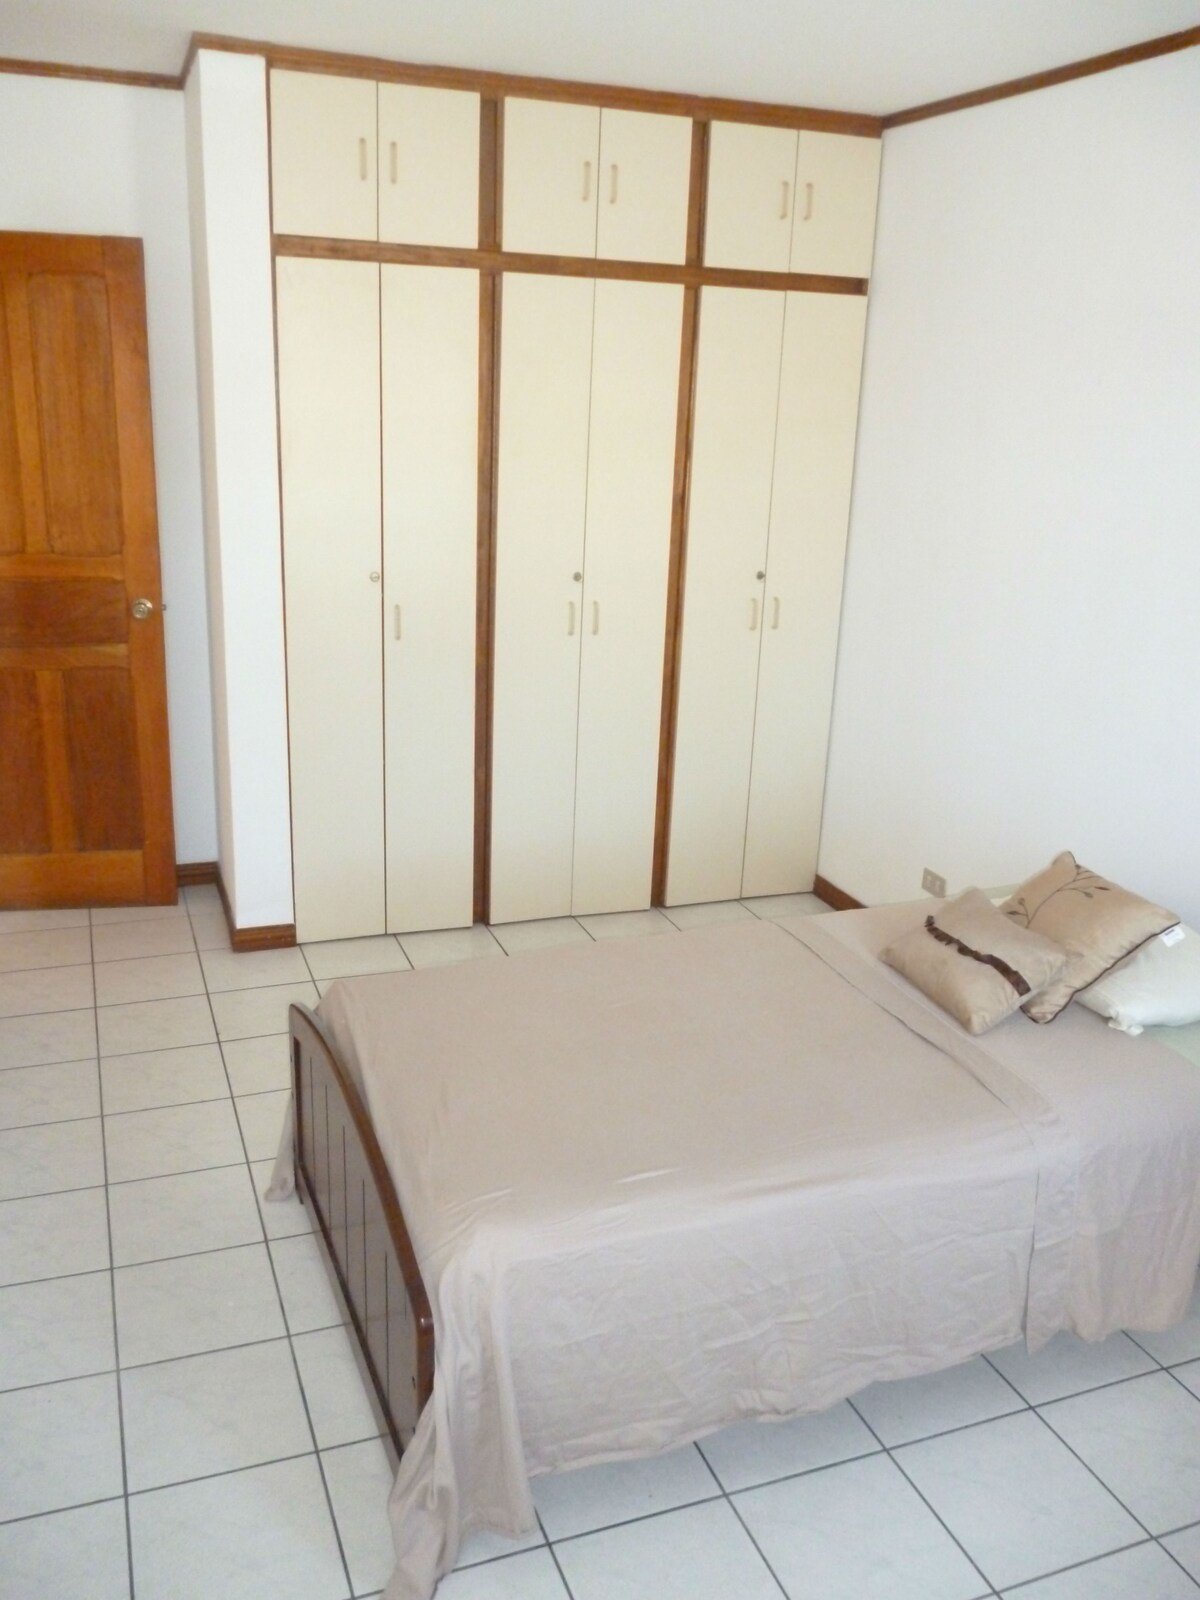 Private room, hot water, single bed